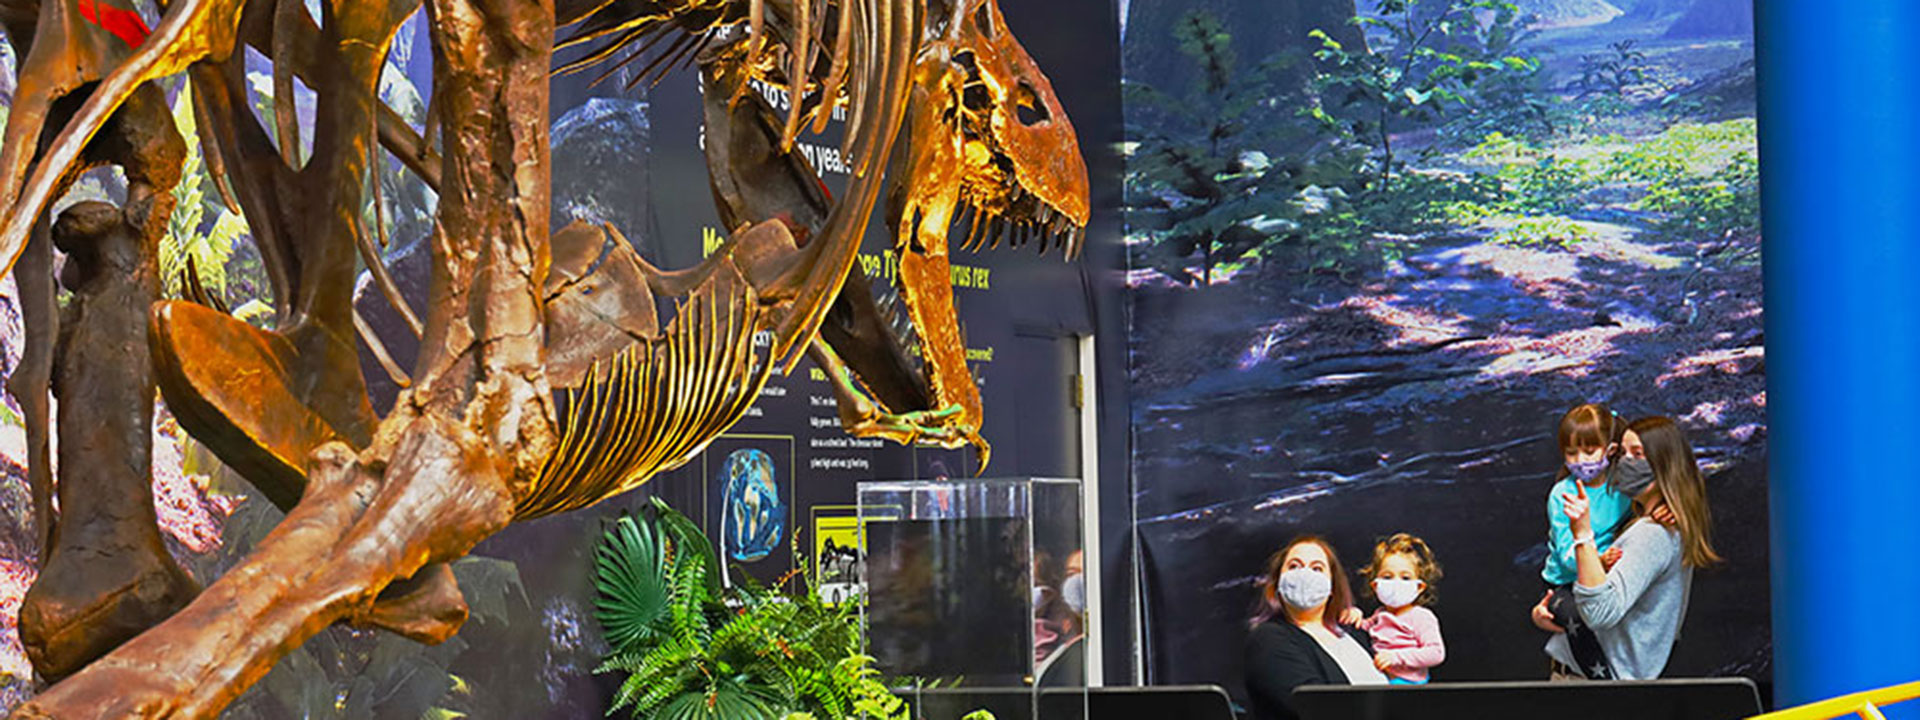 See Bucky the teenage T. rex in the SUE Meets Bucky exhibit at The Children's Museum of Indianapolis.